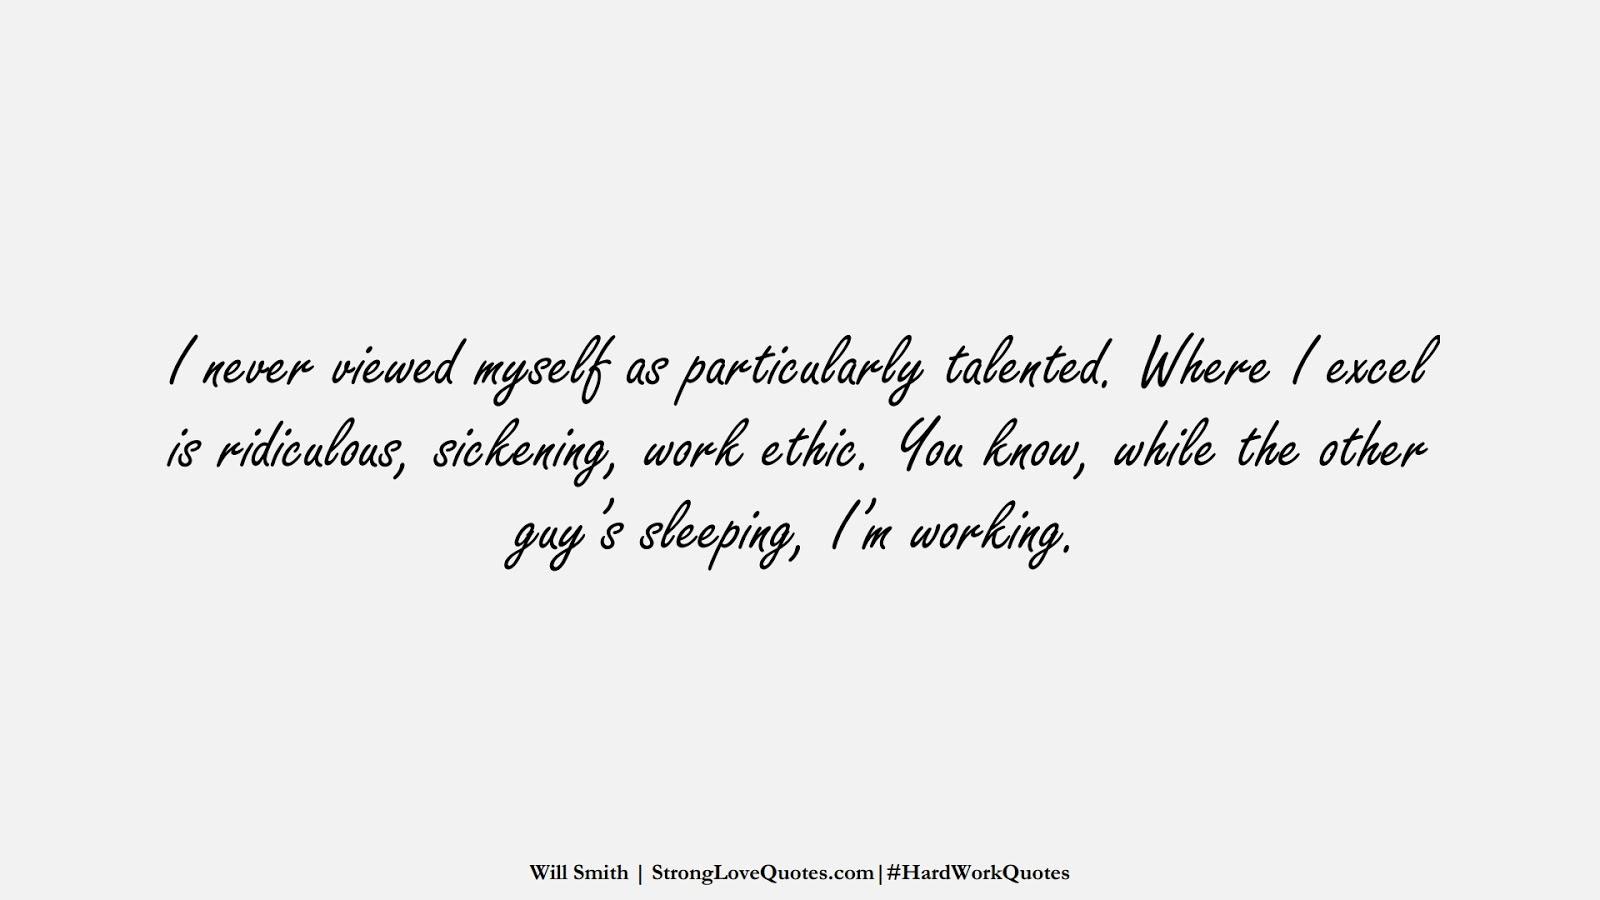 I never viewed myself as particularly talented. Where I excel is ridiculous, sickening, work ethic. You know, while the other guy's sleeping, I'm working. (Will Smith);  #HardWorkQuotes